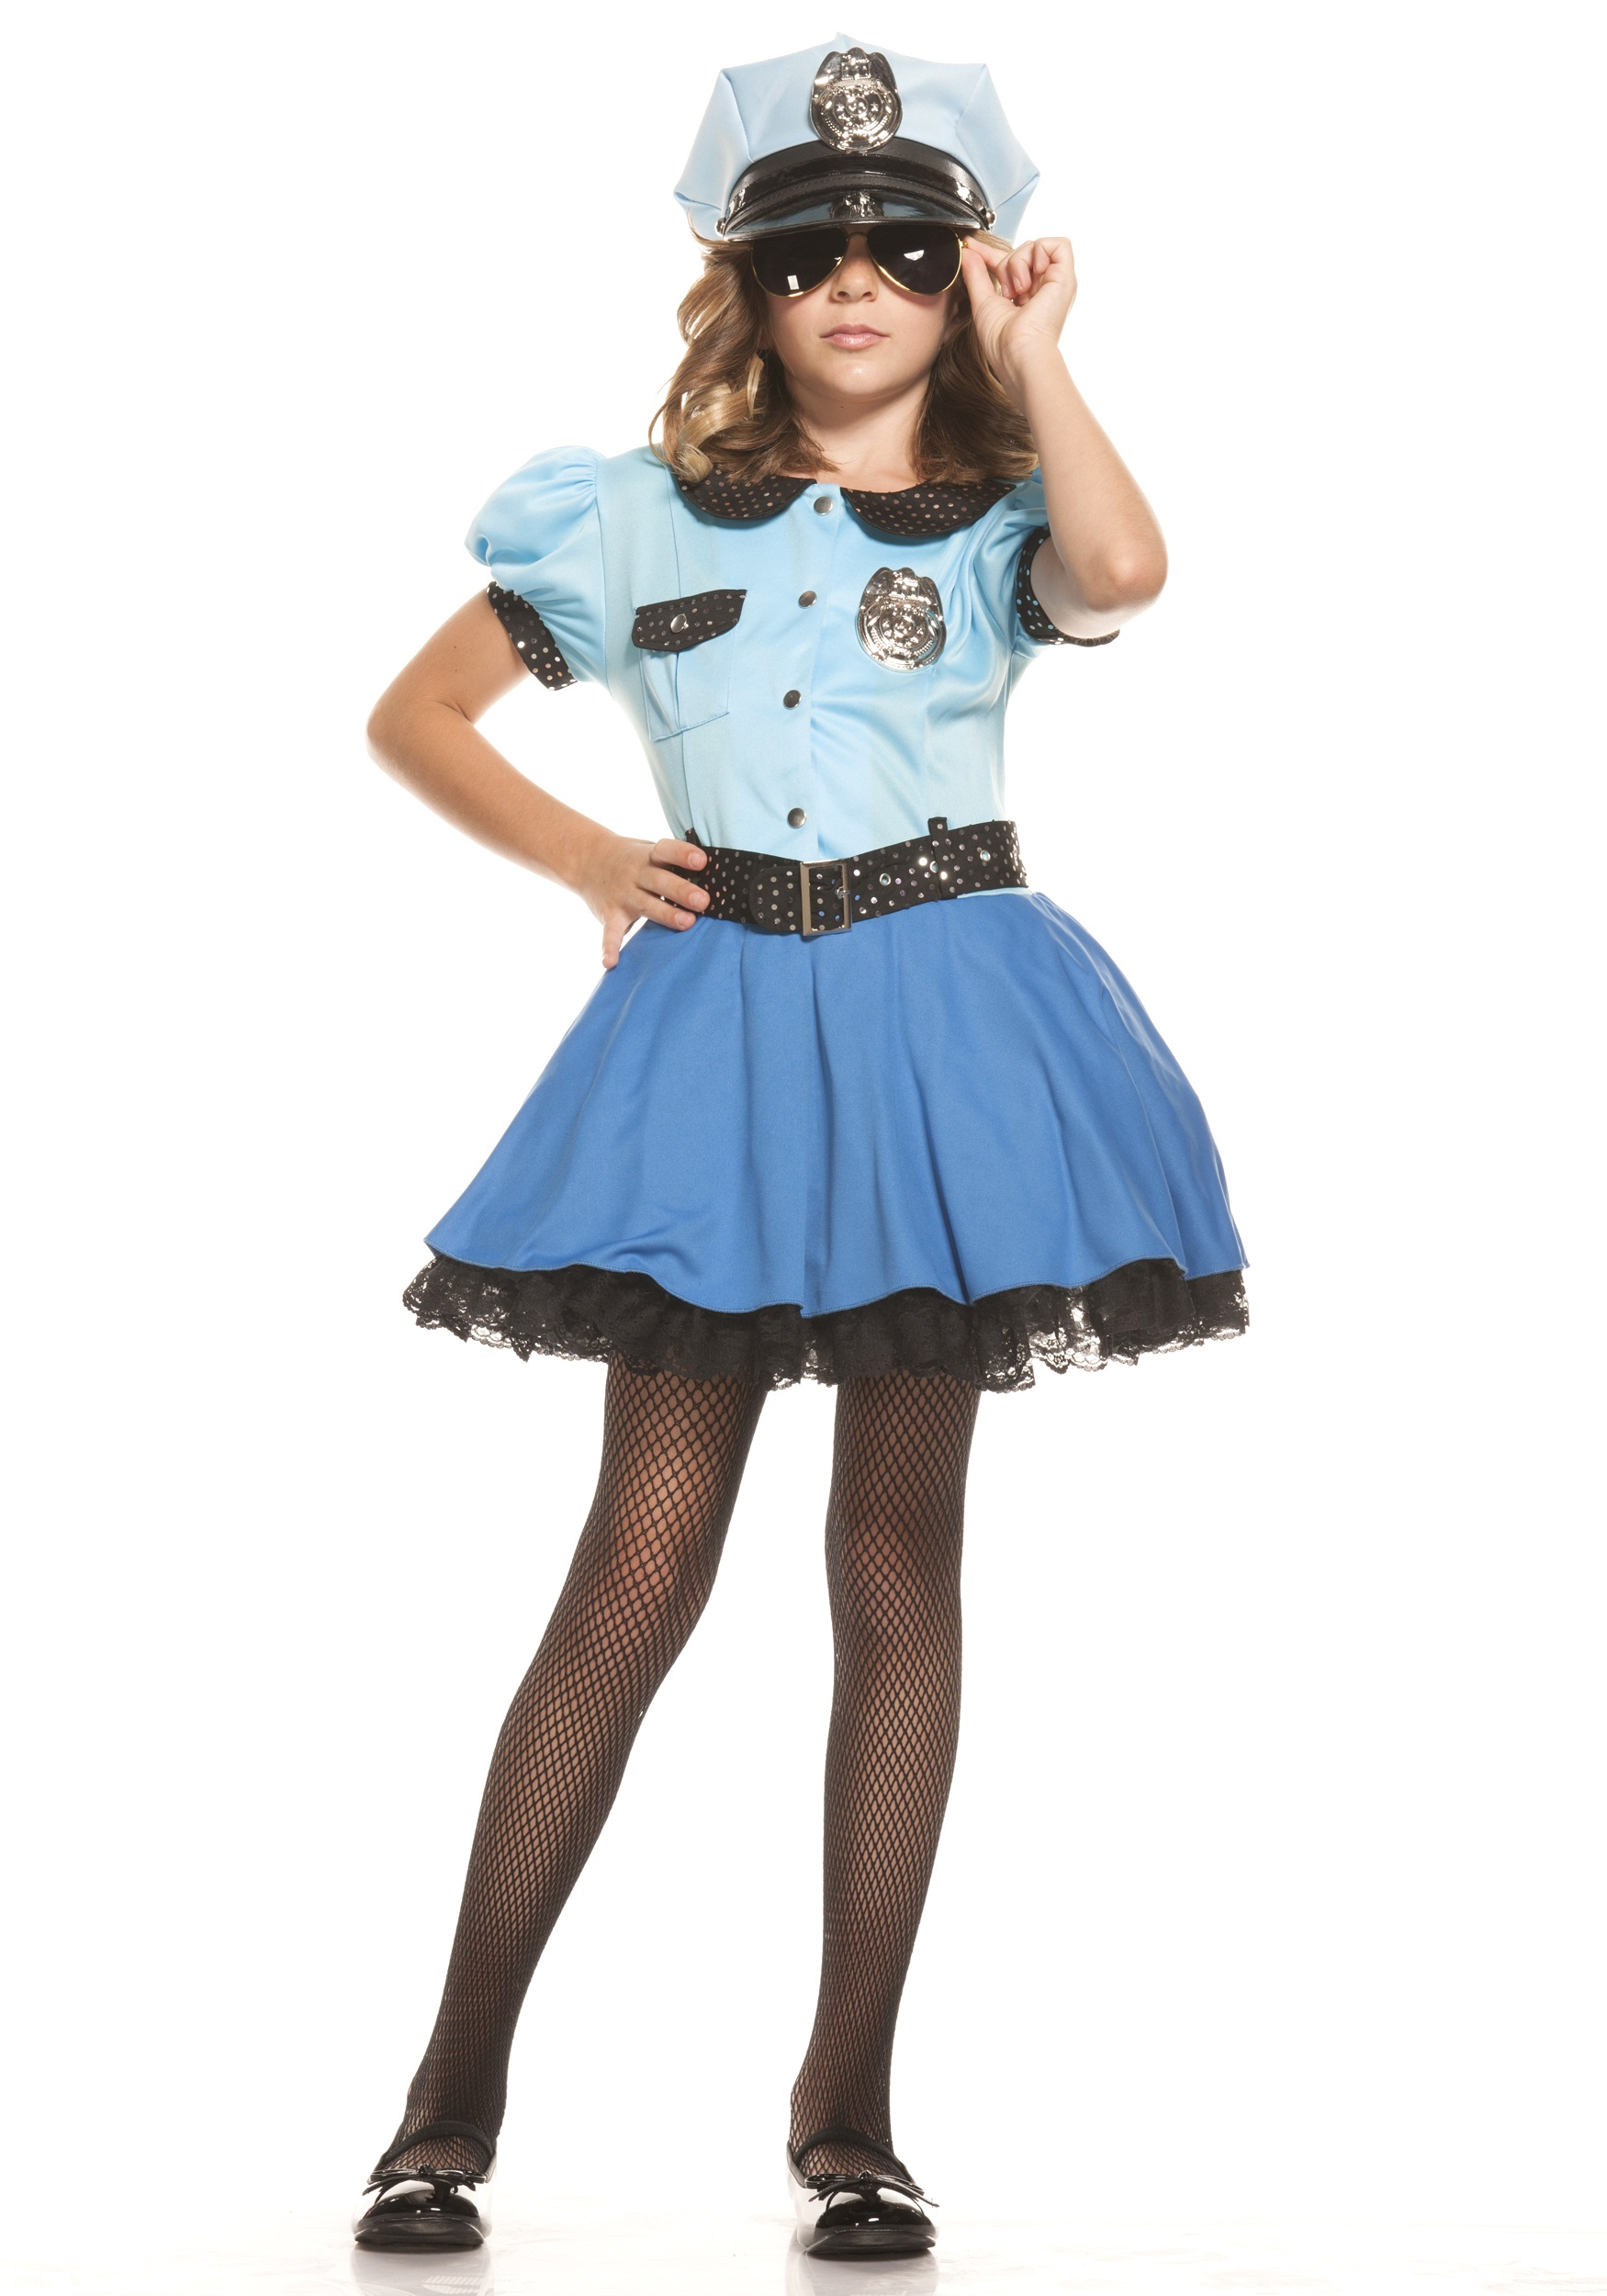 Girls Police Uniform Costume  sc 1 st  Halloween Costumes & Girls Police Uniform Costume - Halloween Costumes